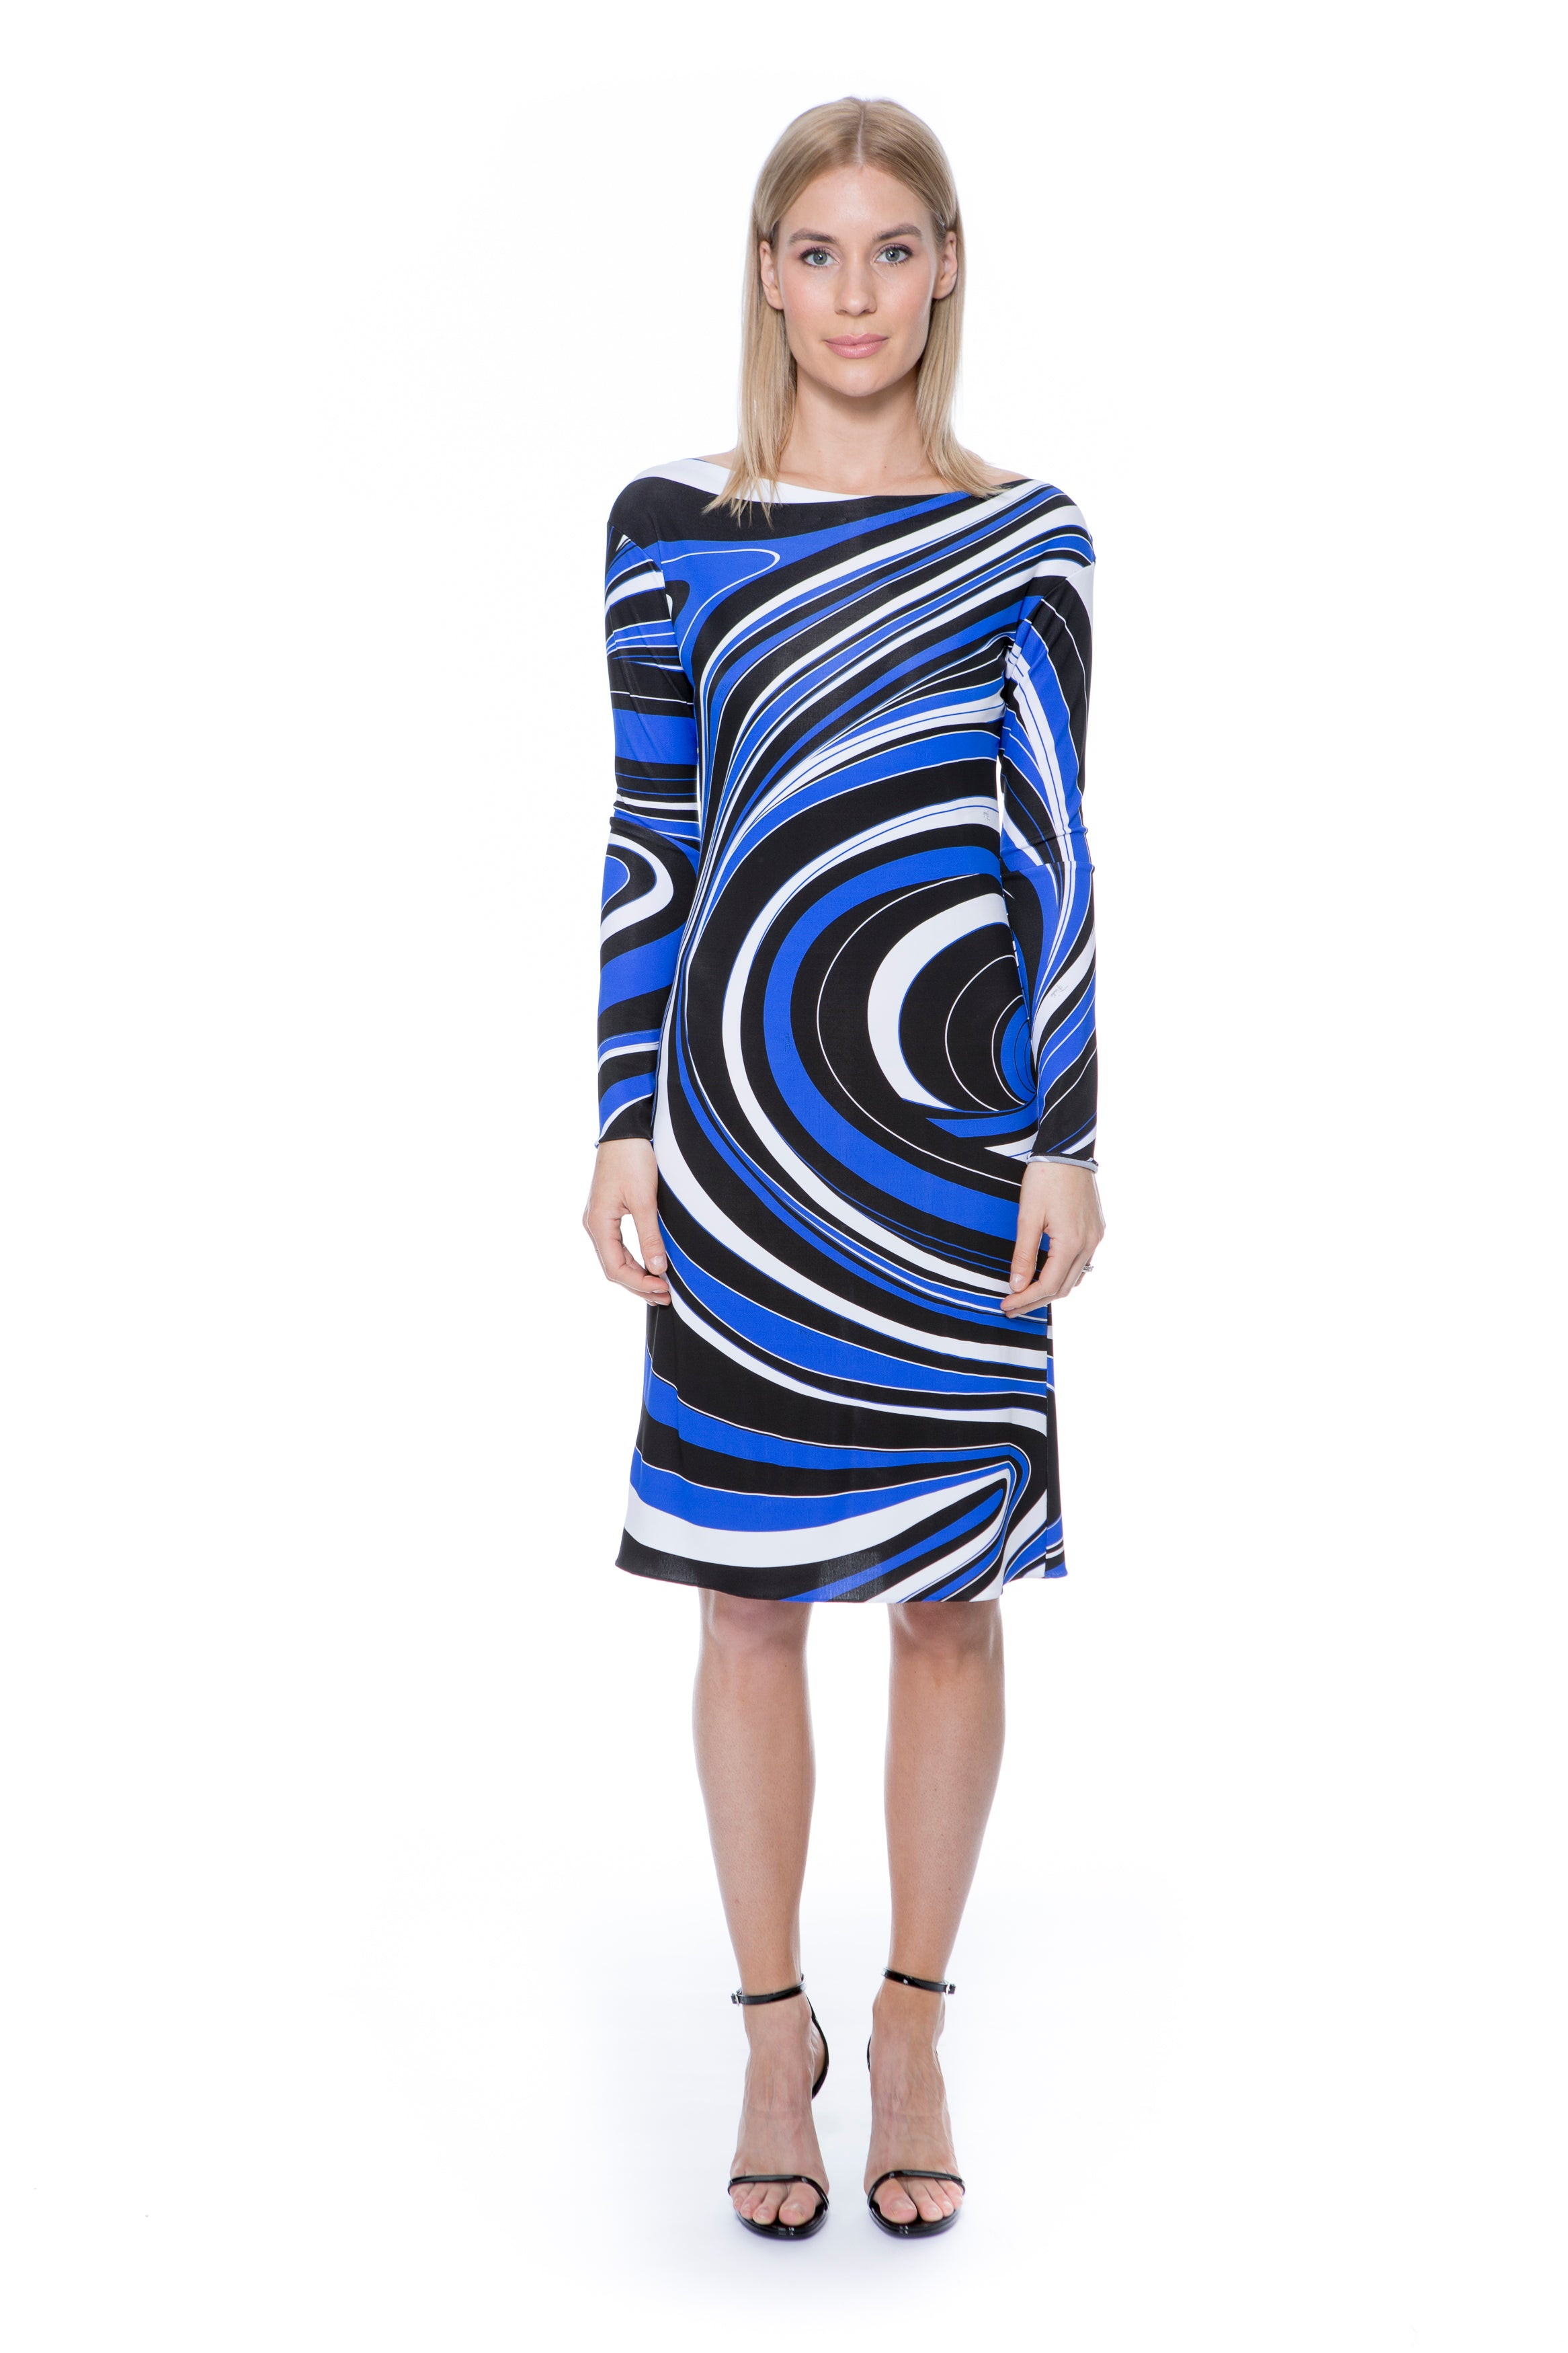 BLUE AND BLACK PRINTED DRESS